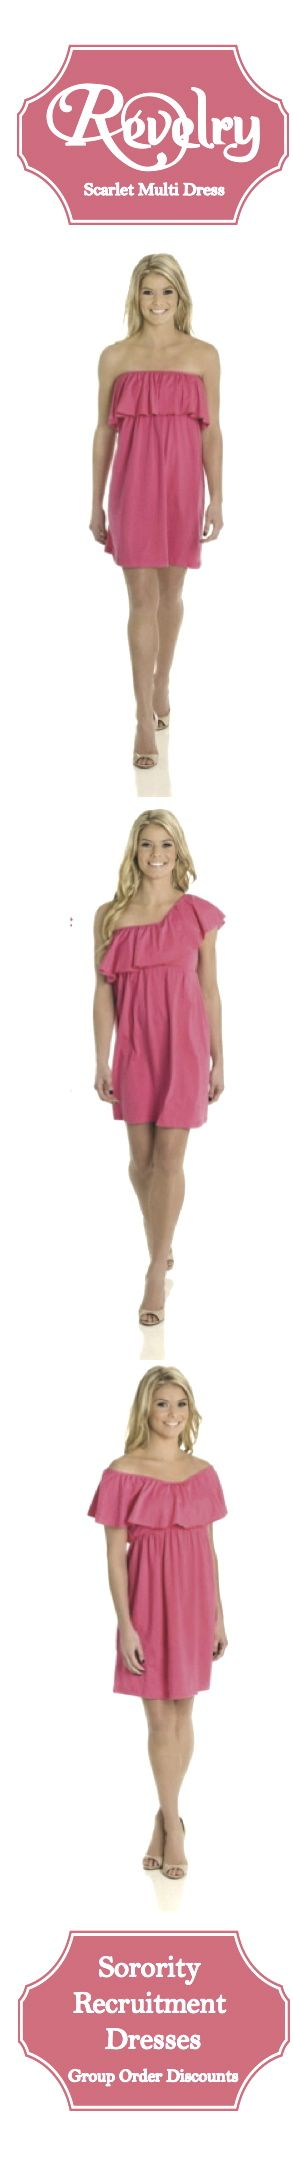 Sorority Recruitment Dresses!  Discounts for group orders. Perfect Sorority Recruitment Outfits! #RecruitmentReady #RevelryDresses